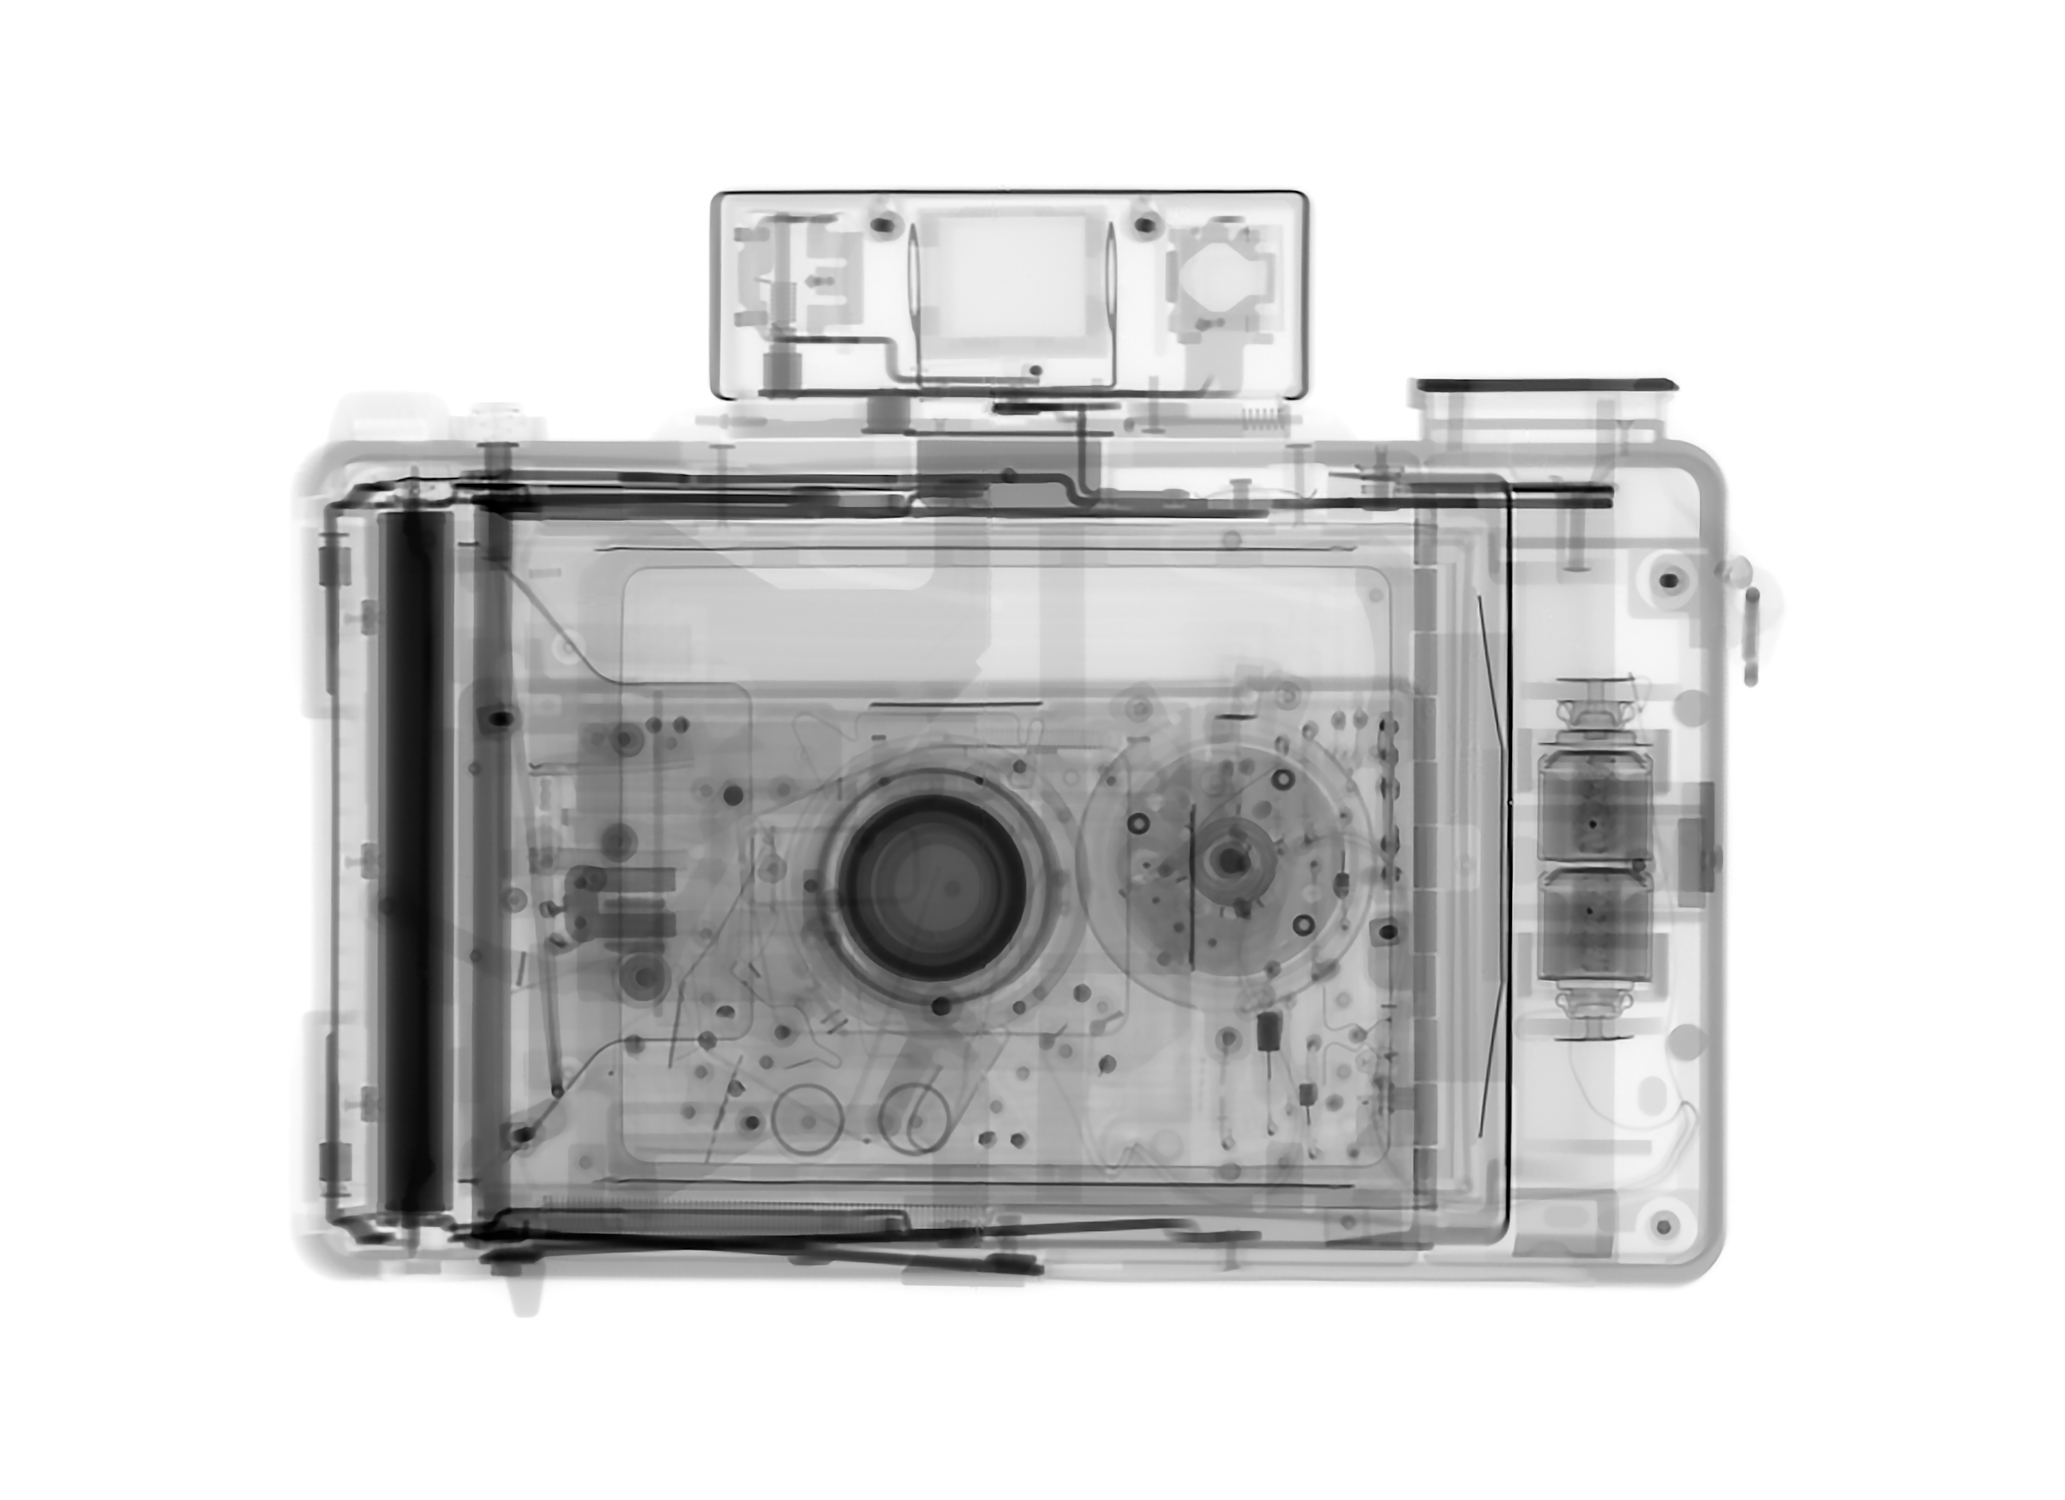 """Polaroid 440"" by Kent Krugh, 13x19in, x-ray archival pigment print (2016), $400 